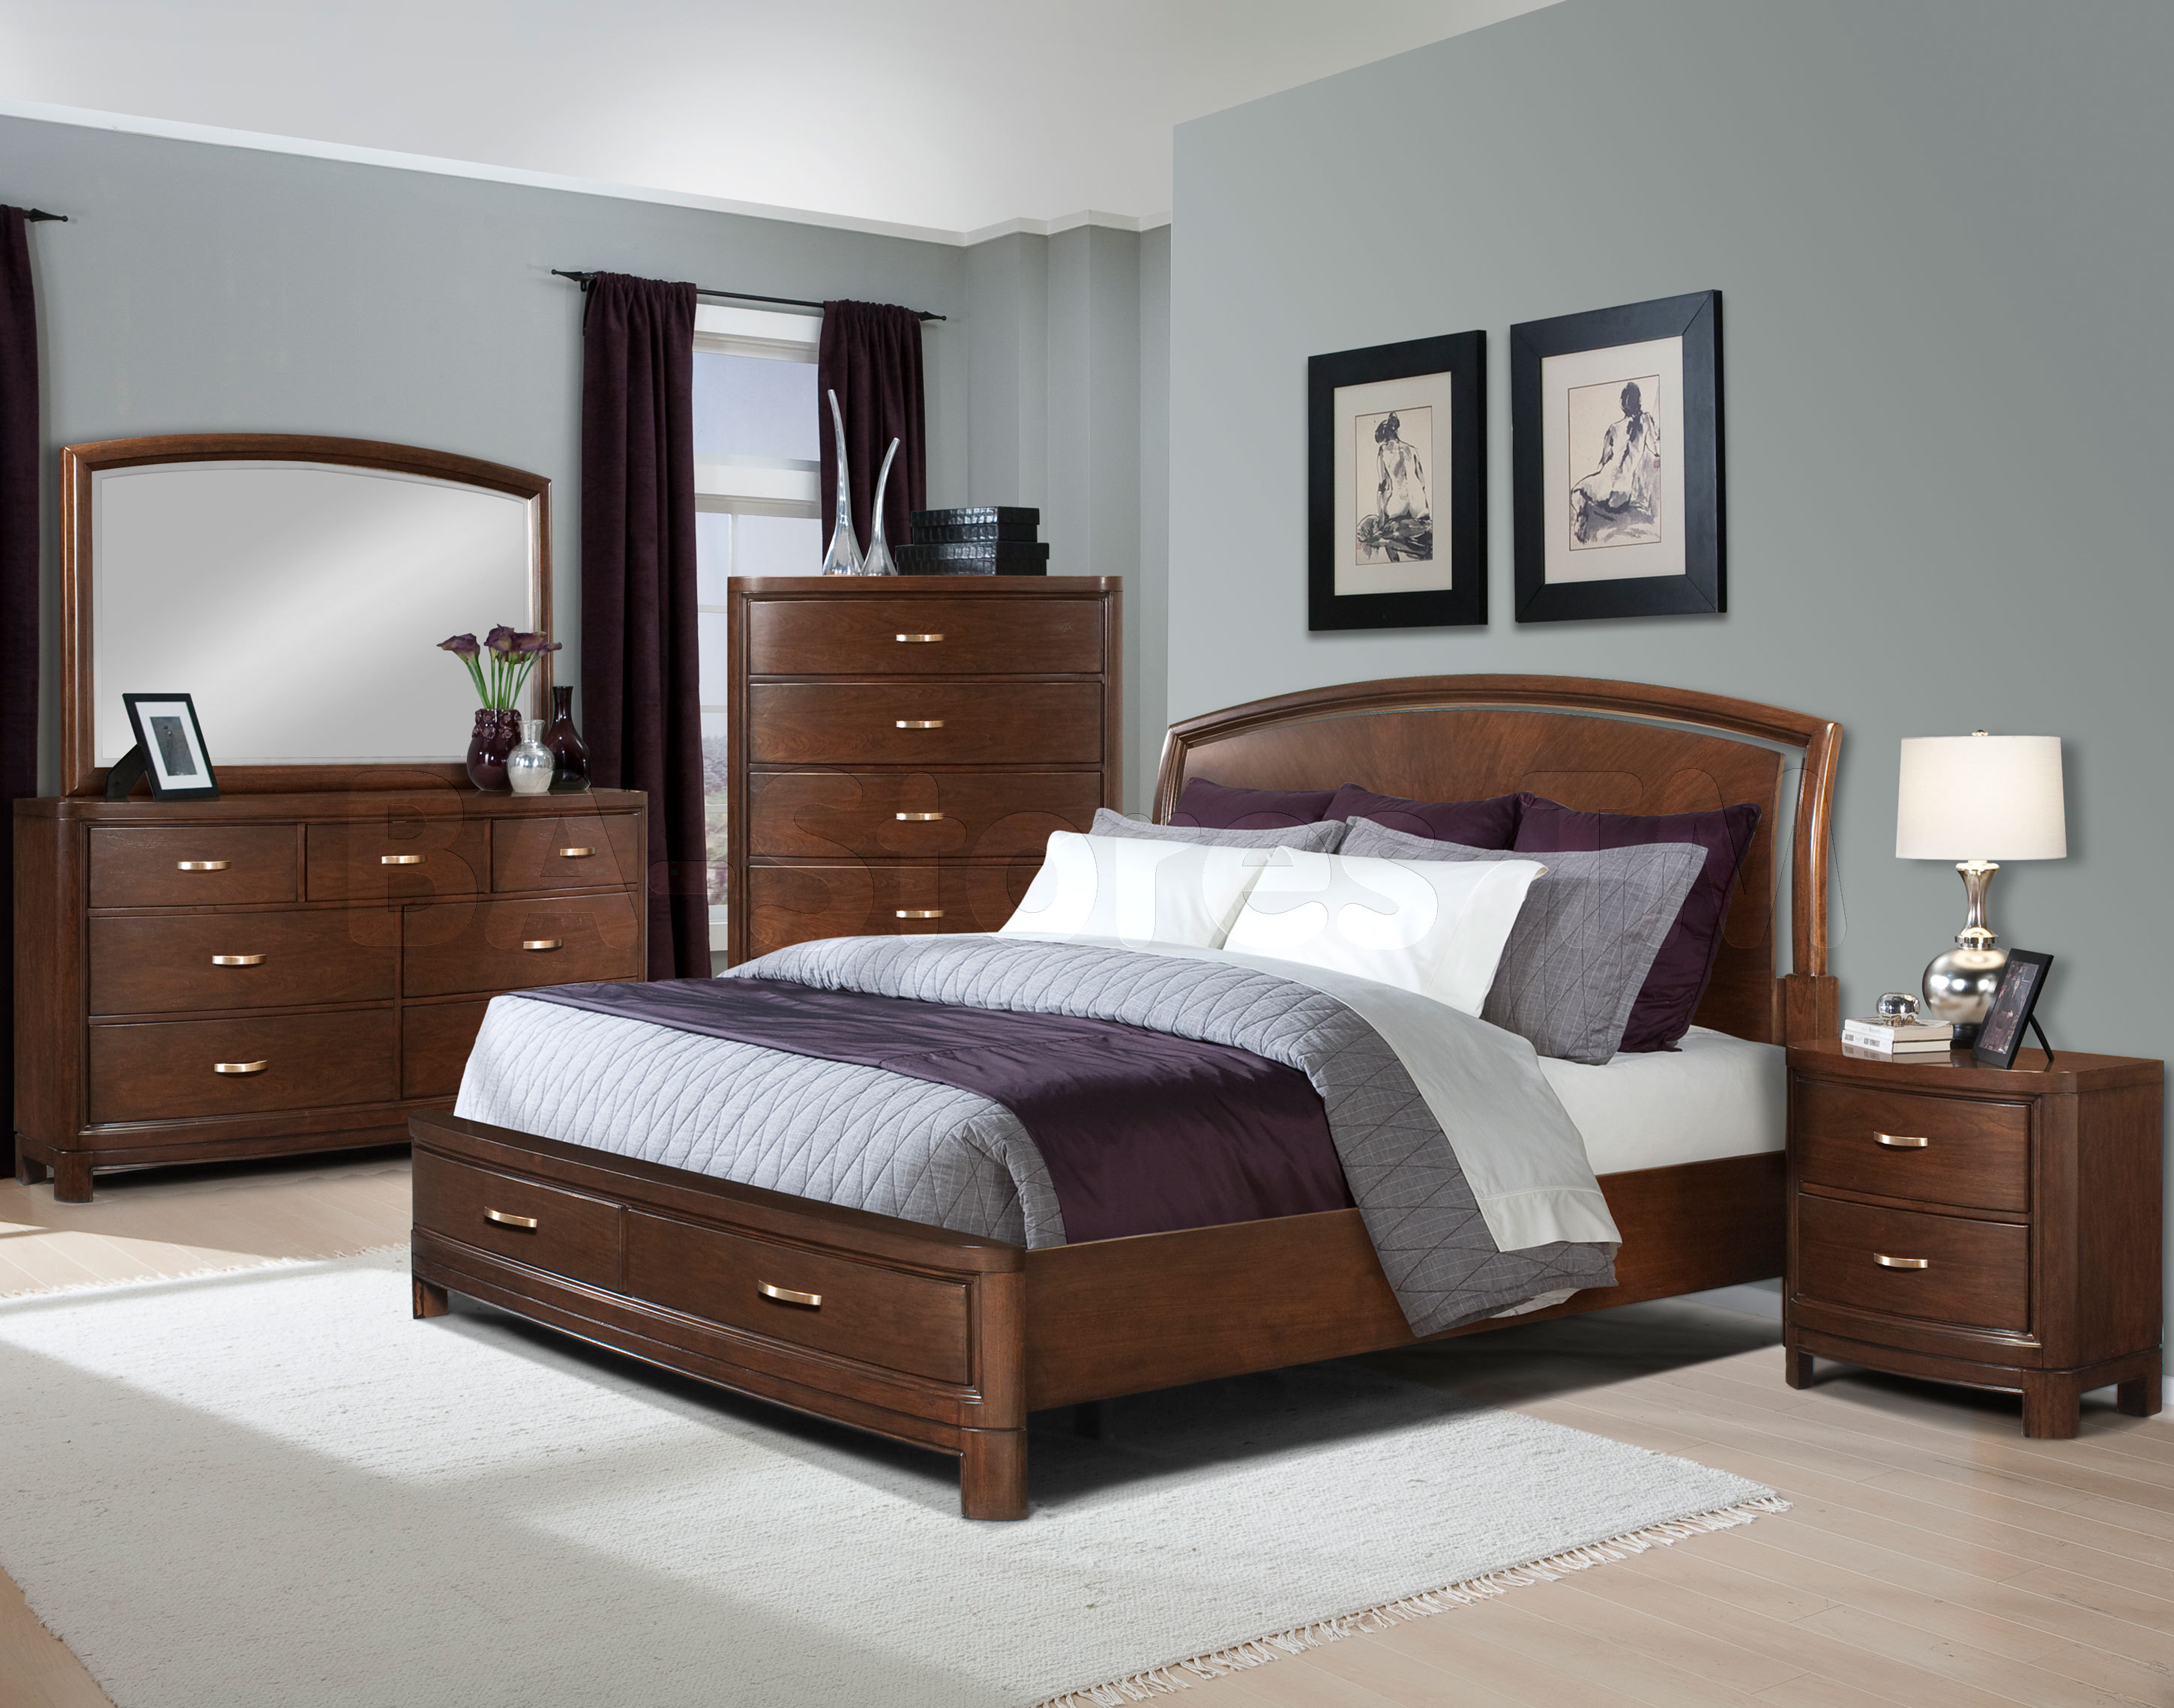 bedroom ideas with brown furniture photo - 1